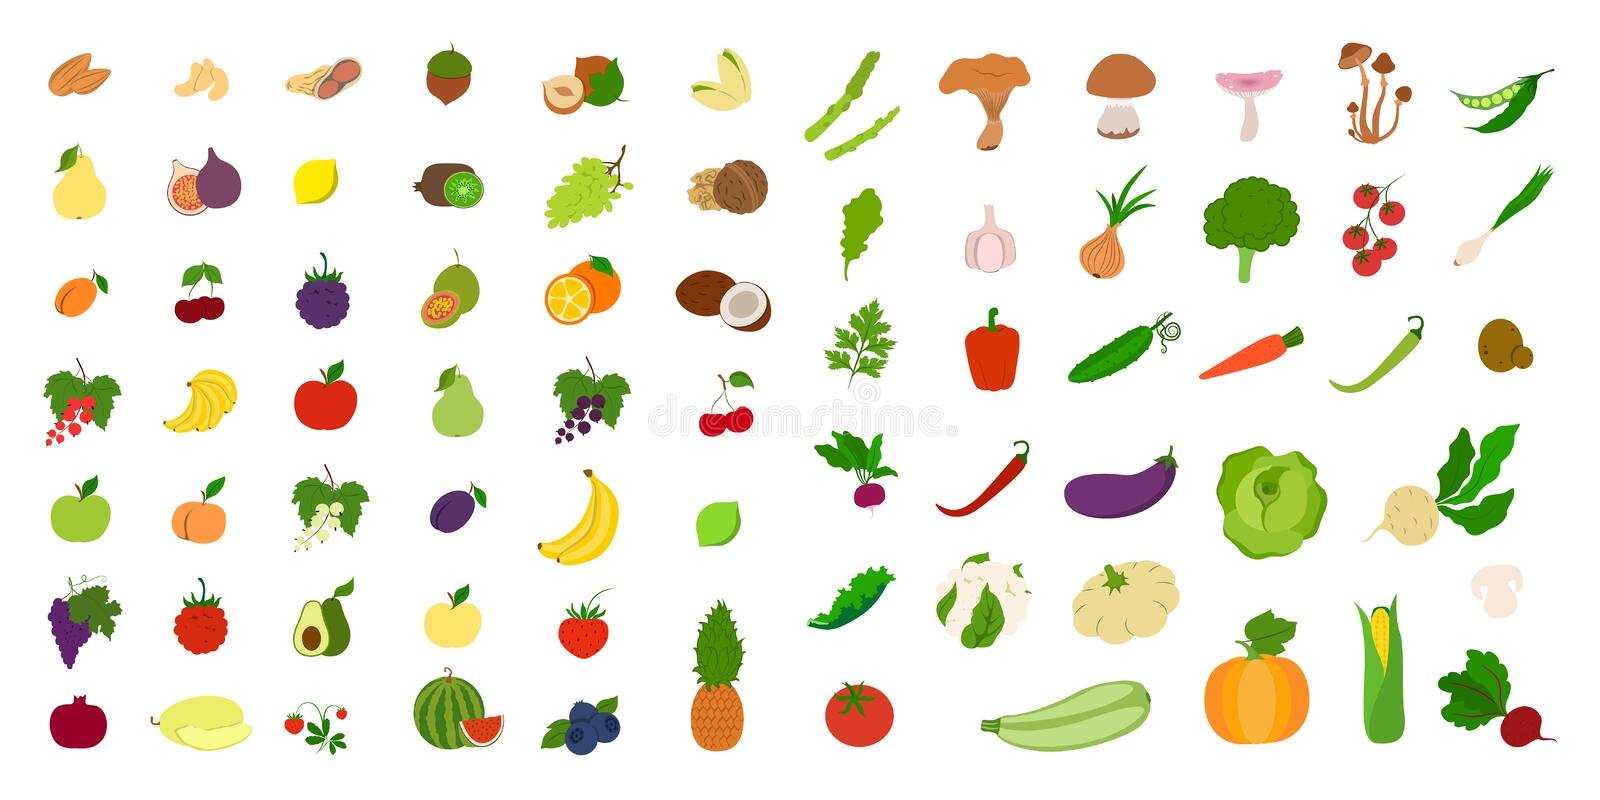 Fruits et légumes illustration stock